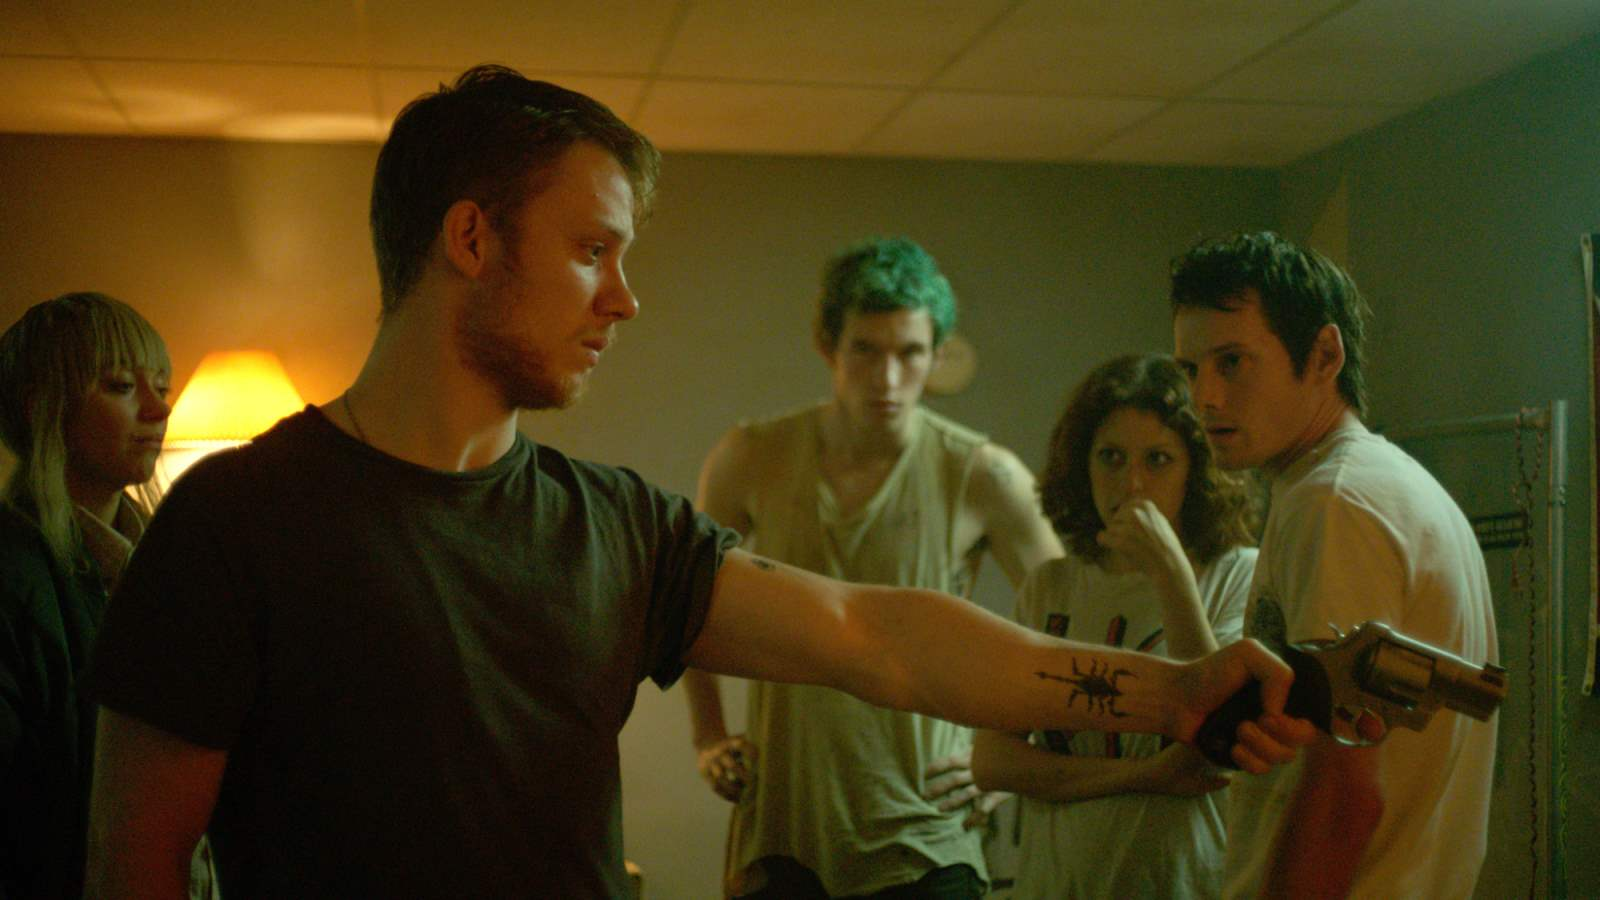 The Ain't Rights in Green Room